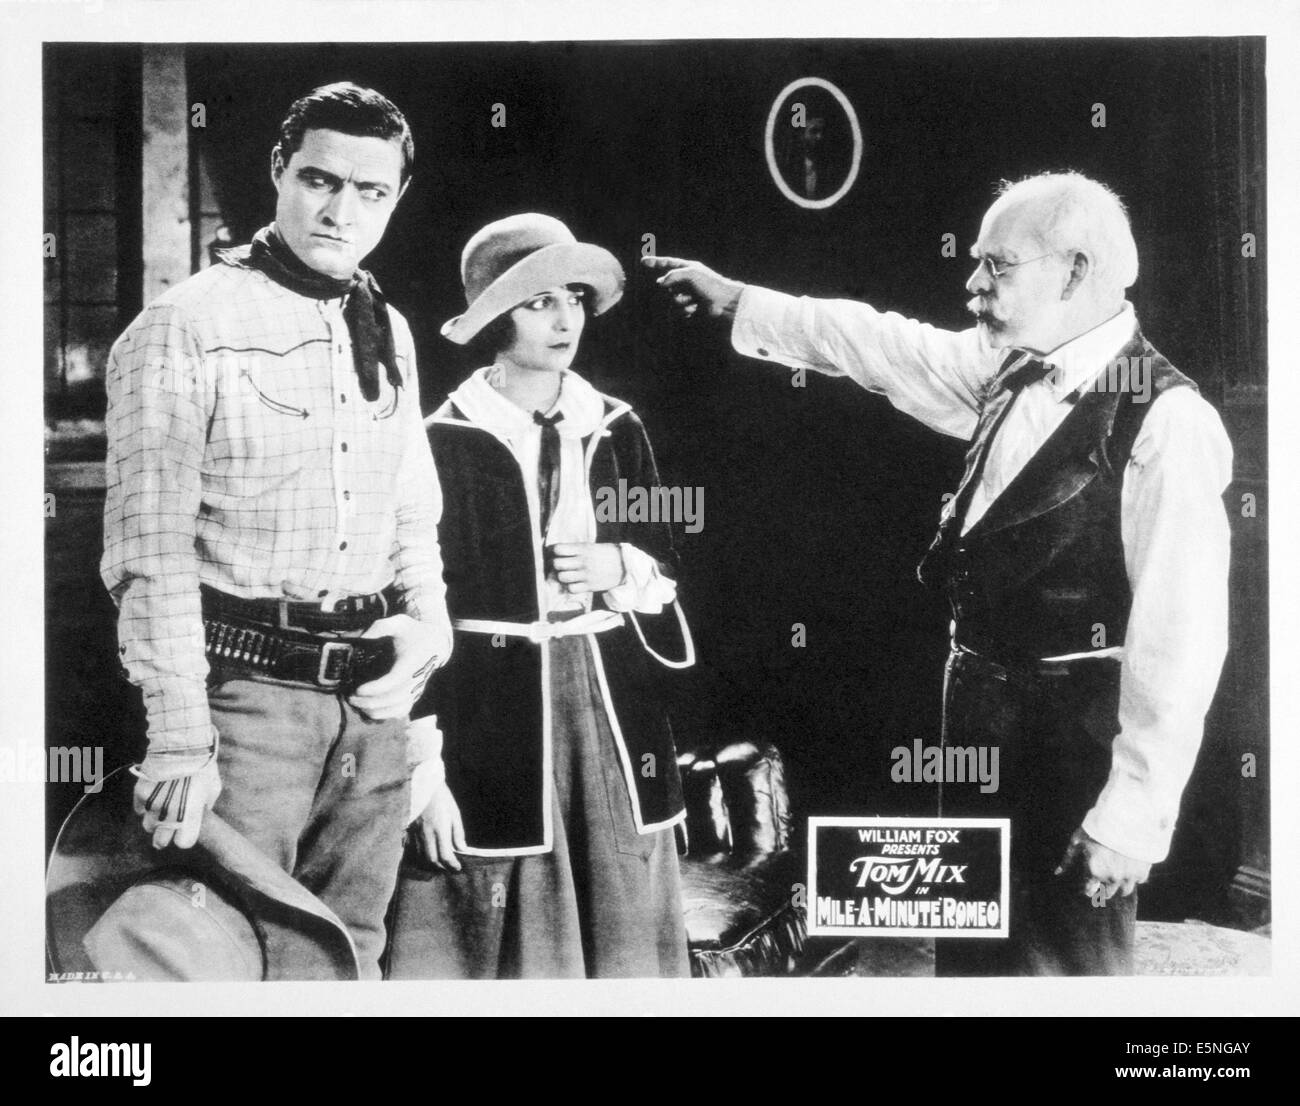 MILE-A-MINUTE ROMEO, from left: tom Mix, Betty Jewel, 1923, TM & Copyright © 20th Century Fox Film Corp./courtesy - Stock Image